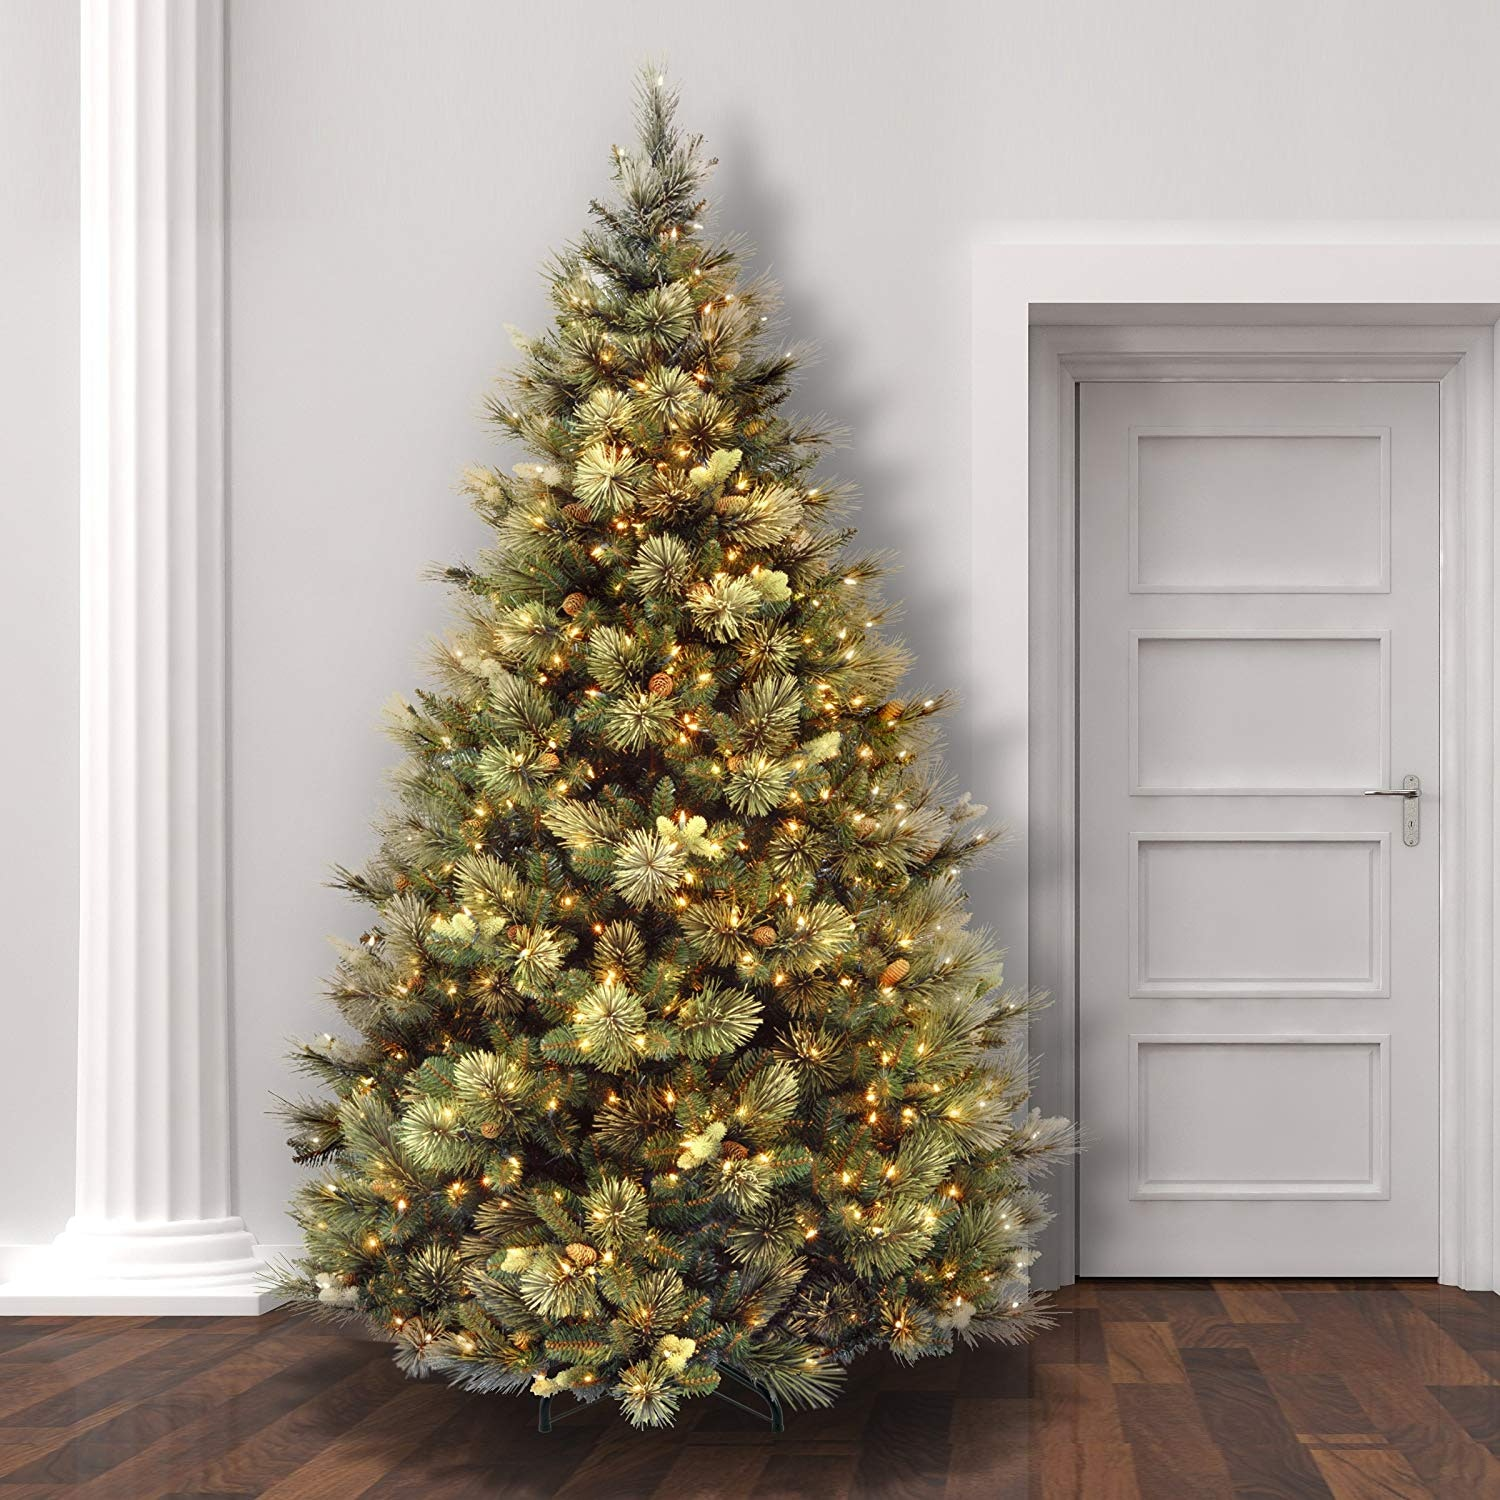 Led Christmas Tree Lights.The 8 Best Artificial Christmas Trees With Led Lights